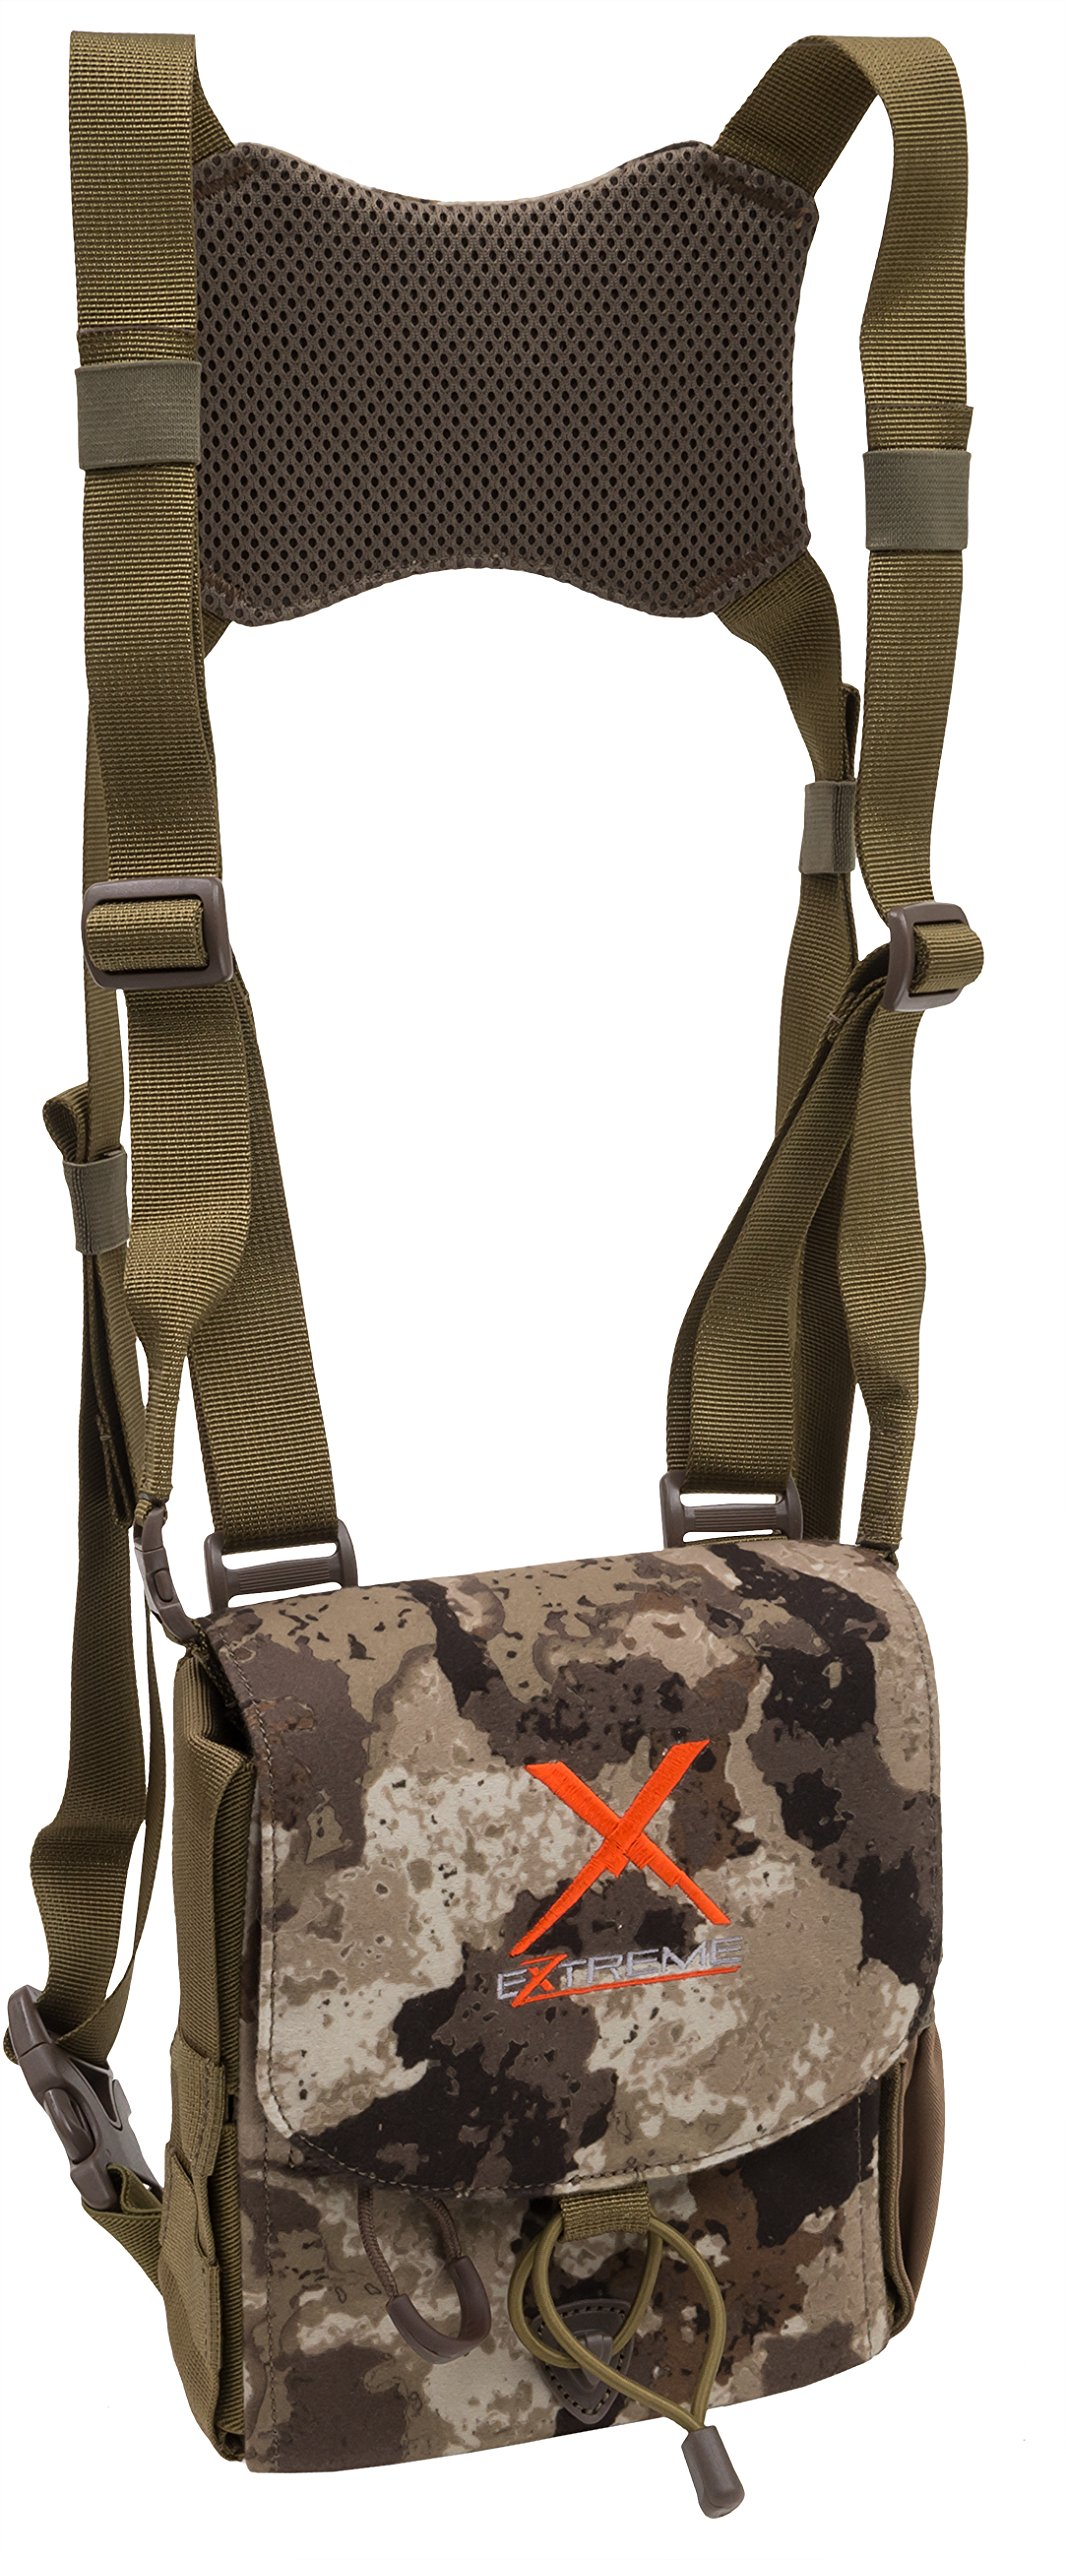 ALPS OutdoorZ Extreme Bino Harness X, Cervidae by ALPS OutdoorZ